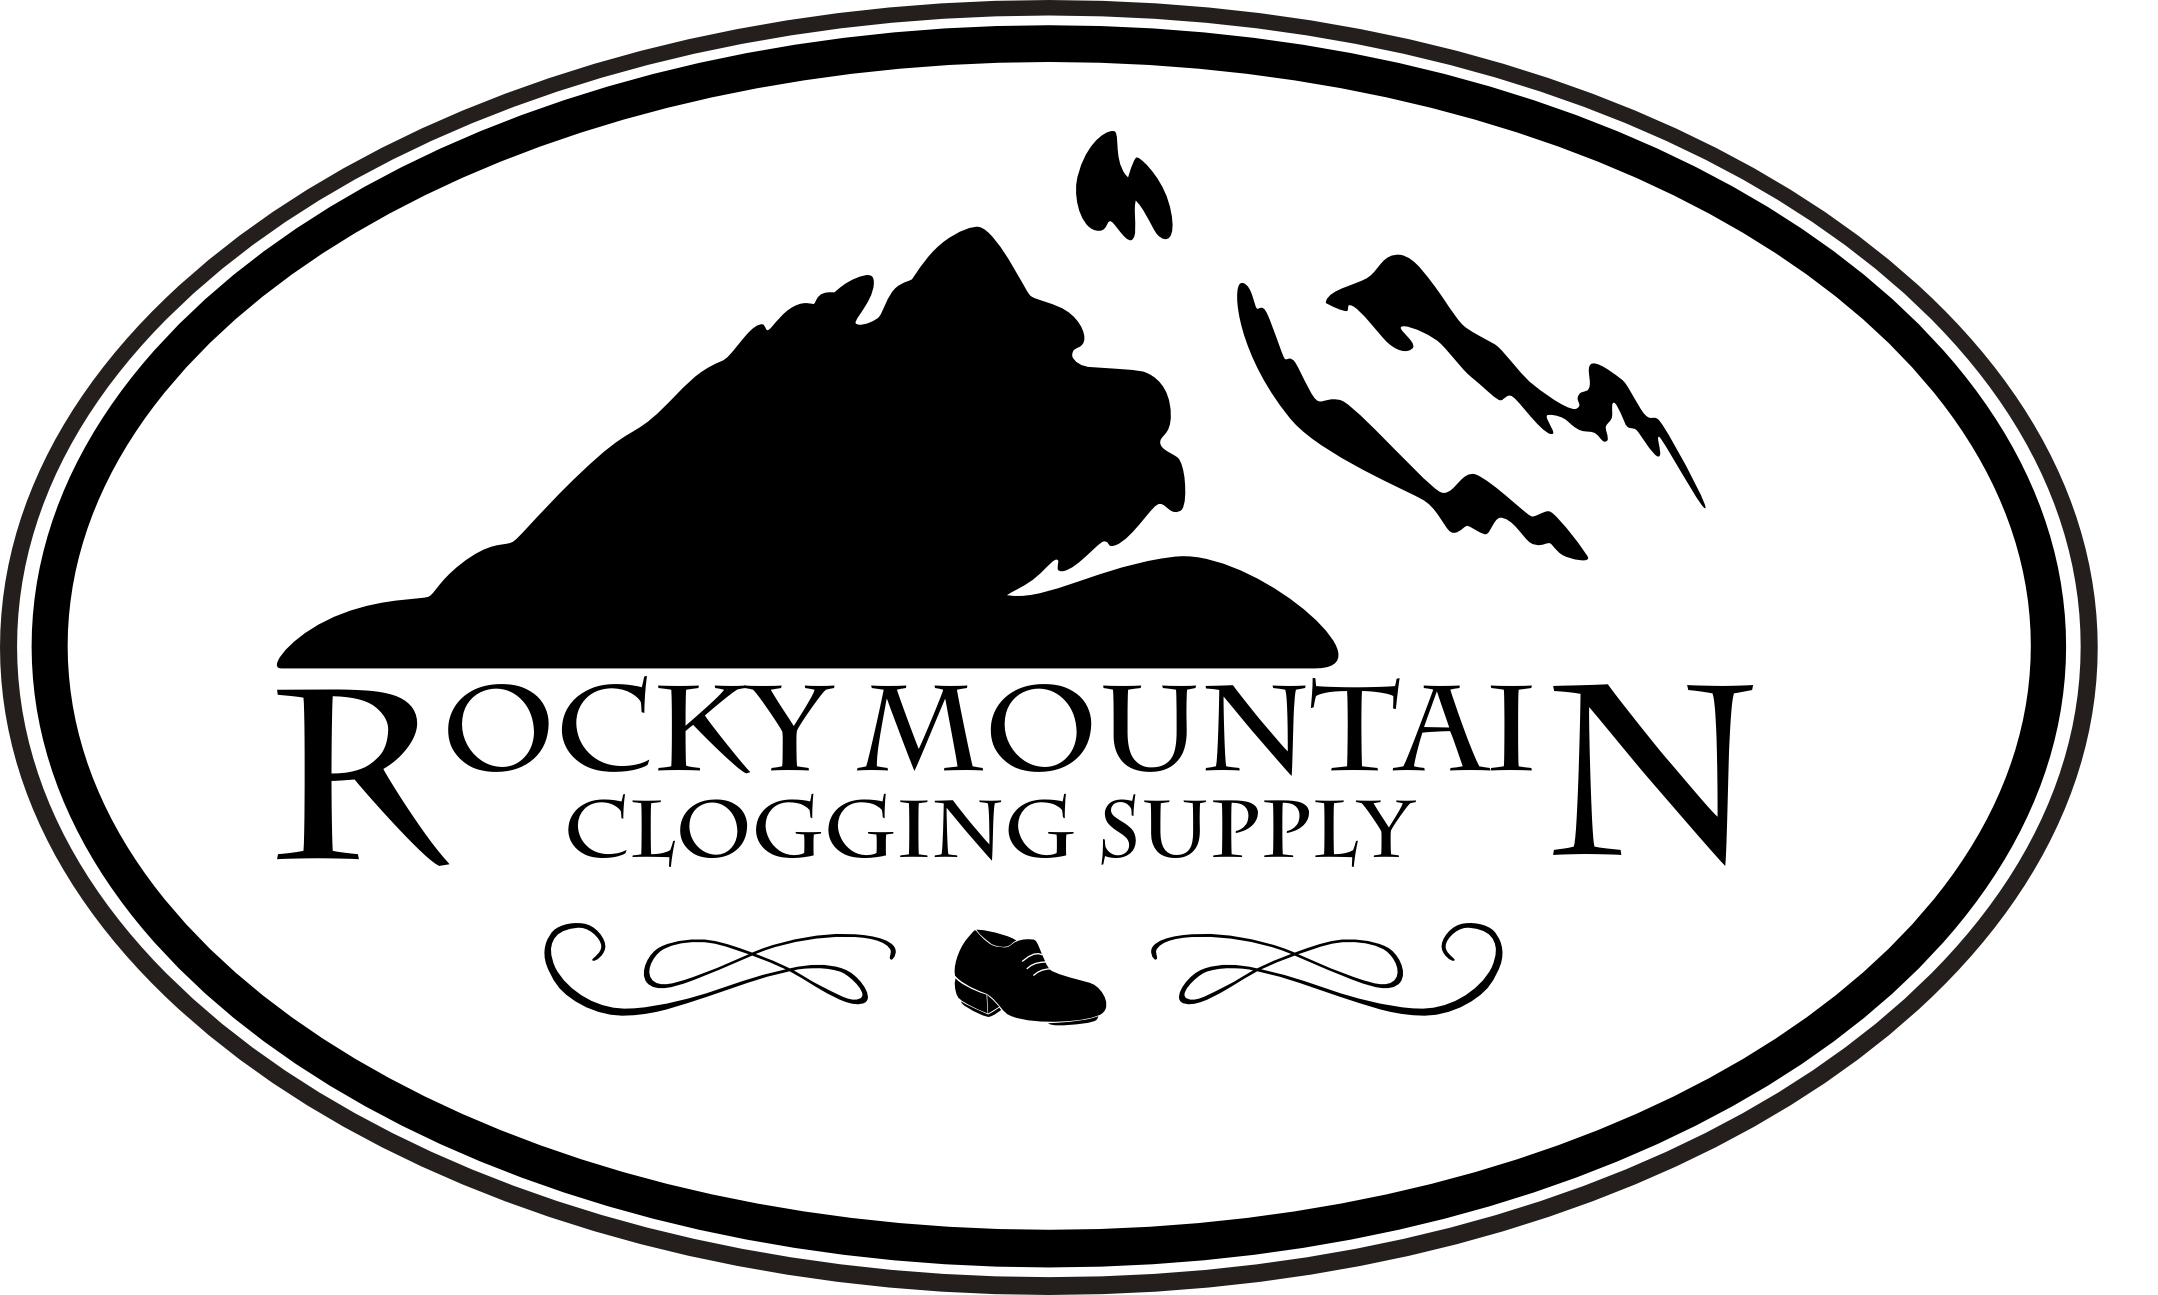 Rocky Mountain Clogging Supply.